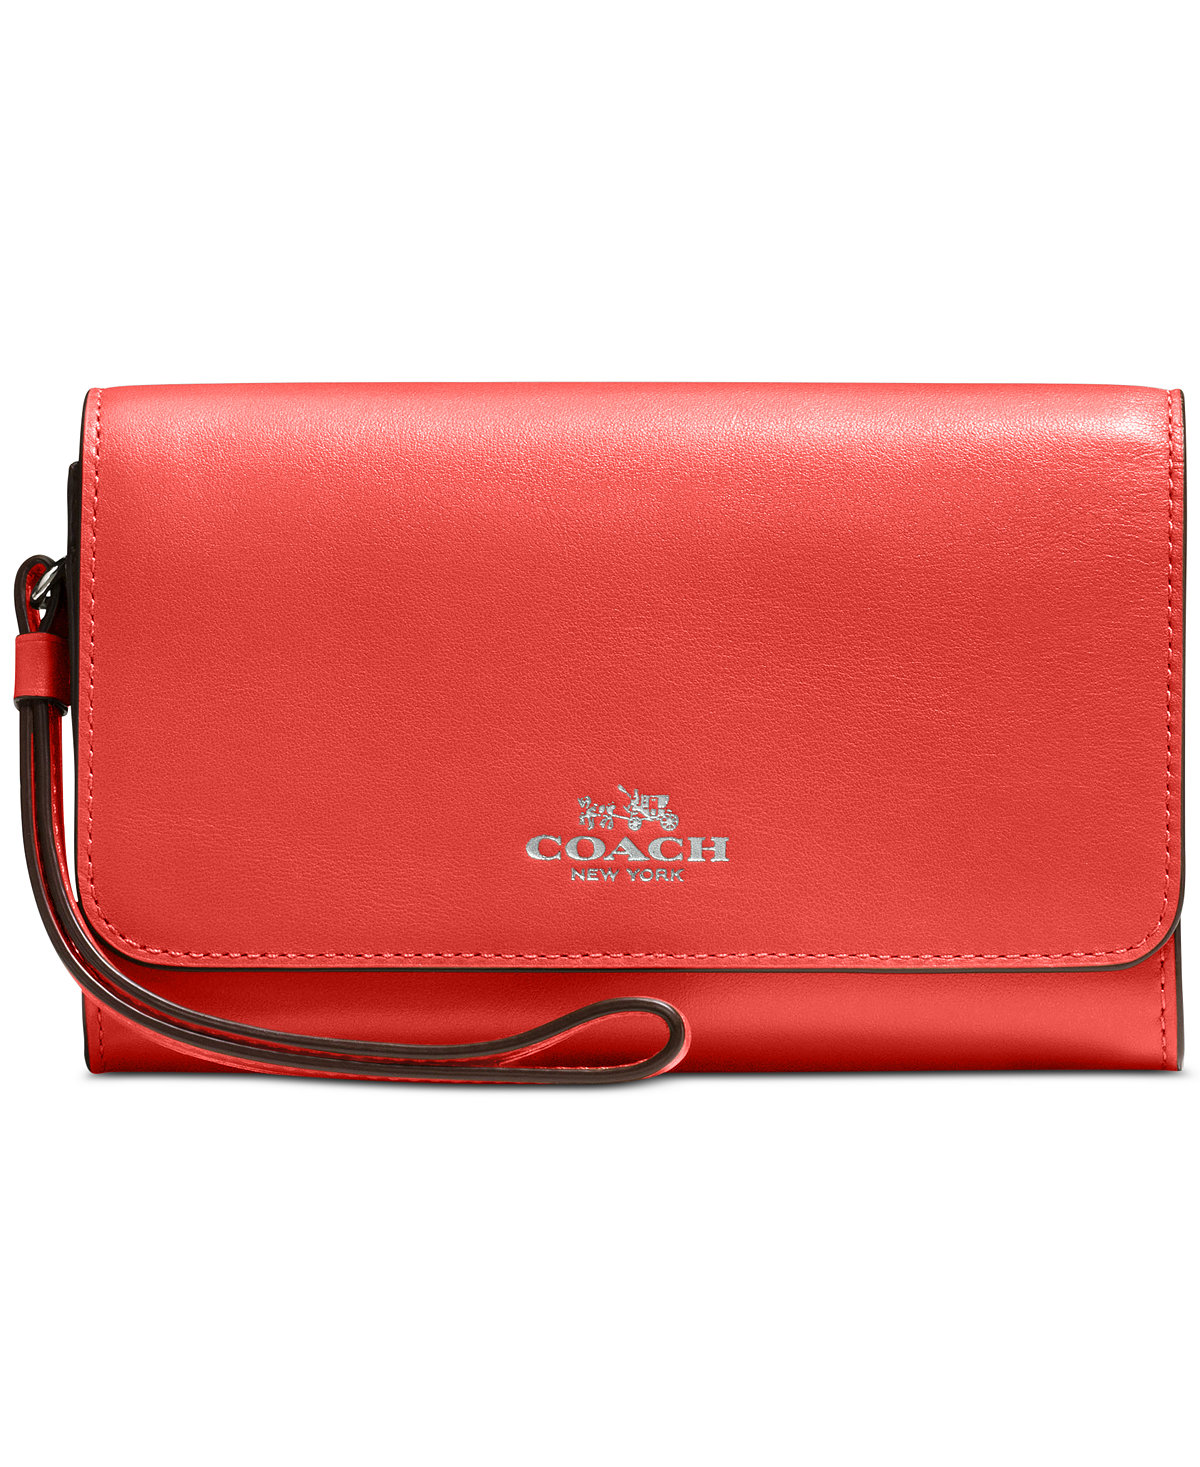 COACH Boxed Phone Clutch in Refined Calf Leather (Multi Colors)